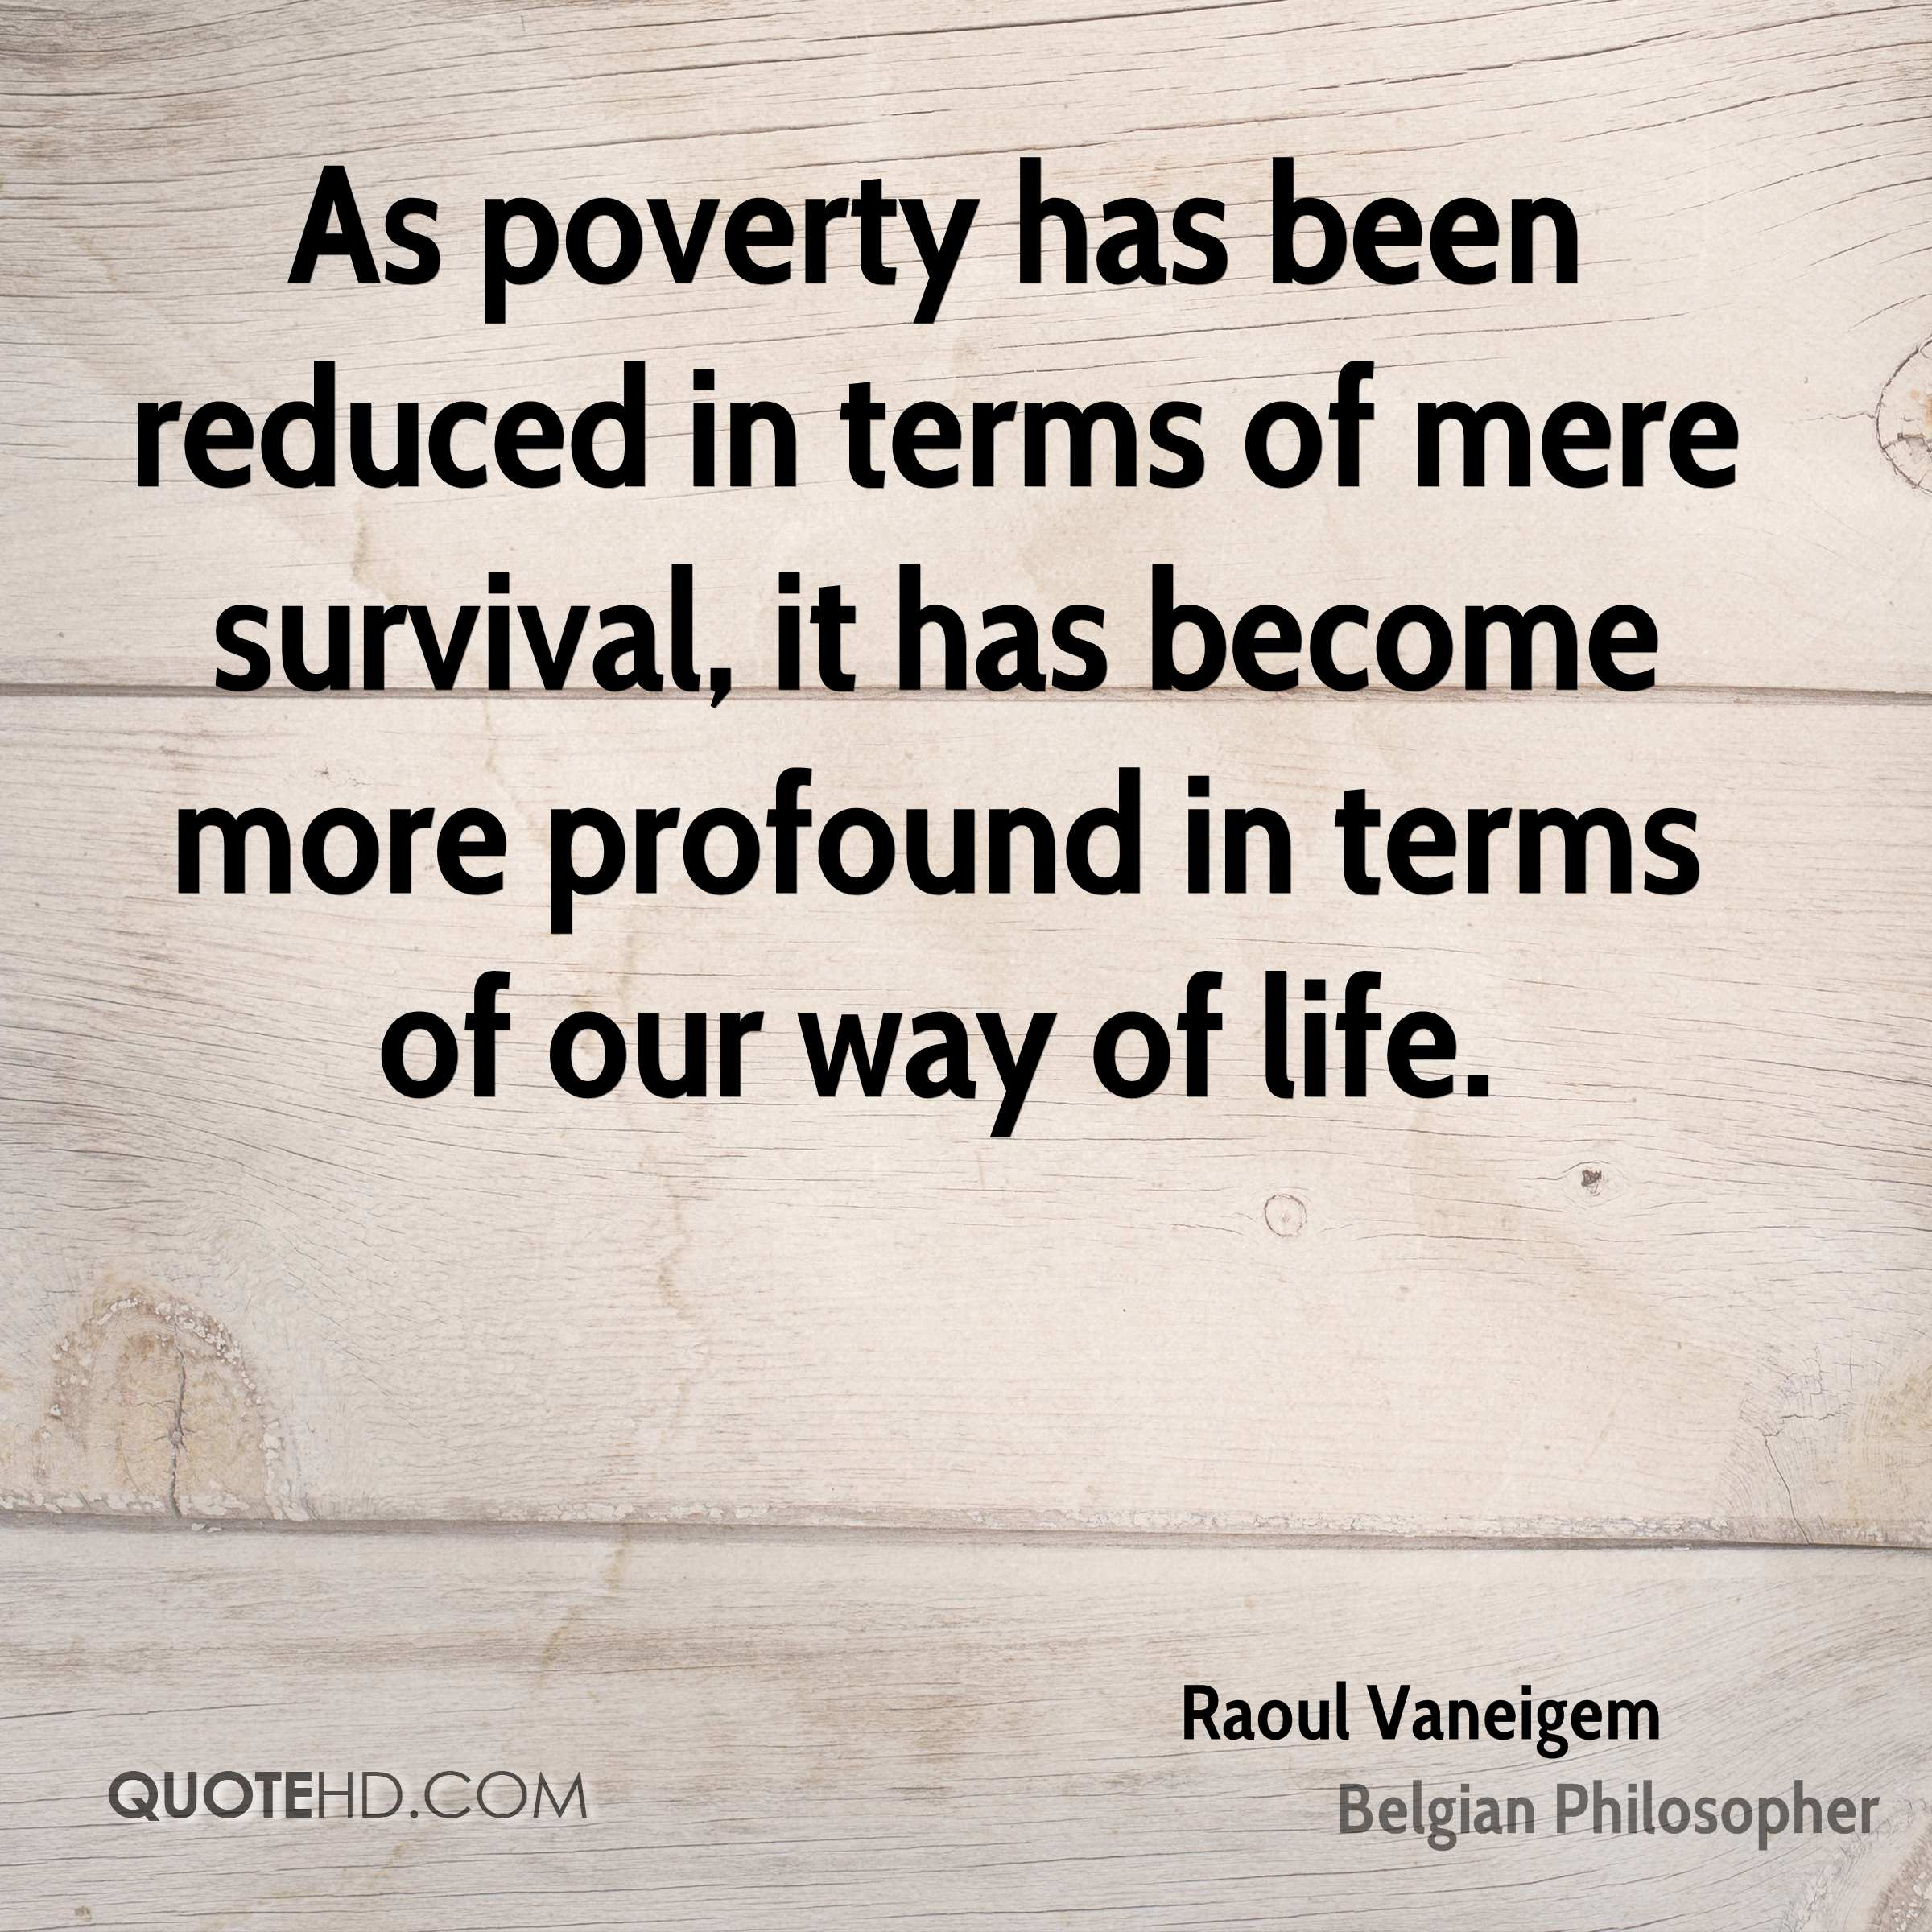 As poverty has been reduced in terms of mere survival, it has become more profound in terms of our way of life.